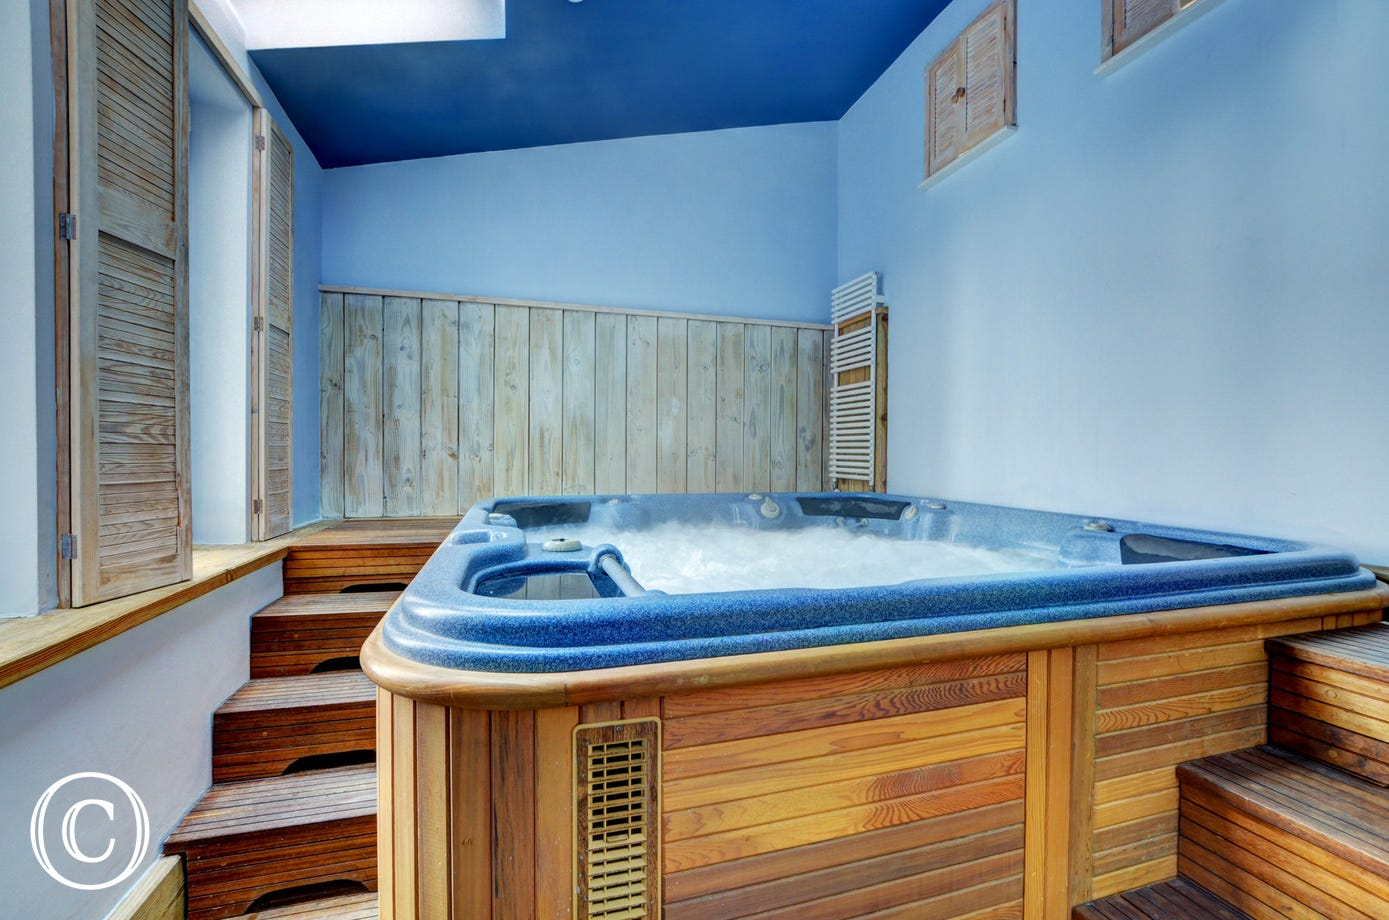 Relax in the huge hot tub after a fun filled day at the beach